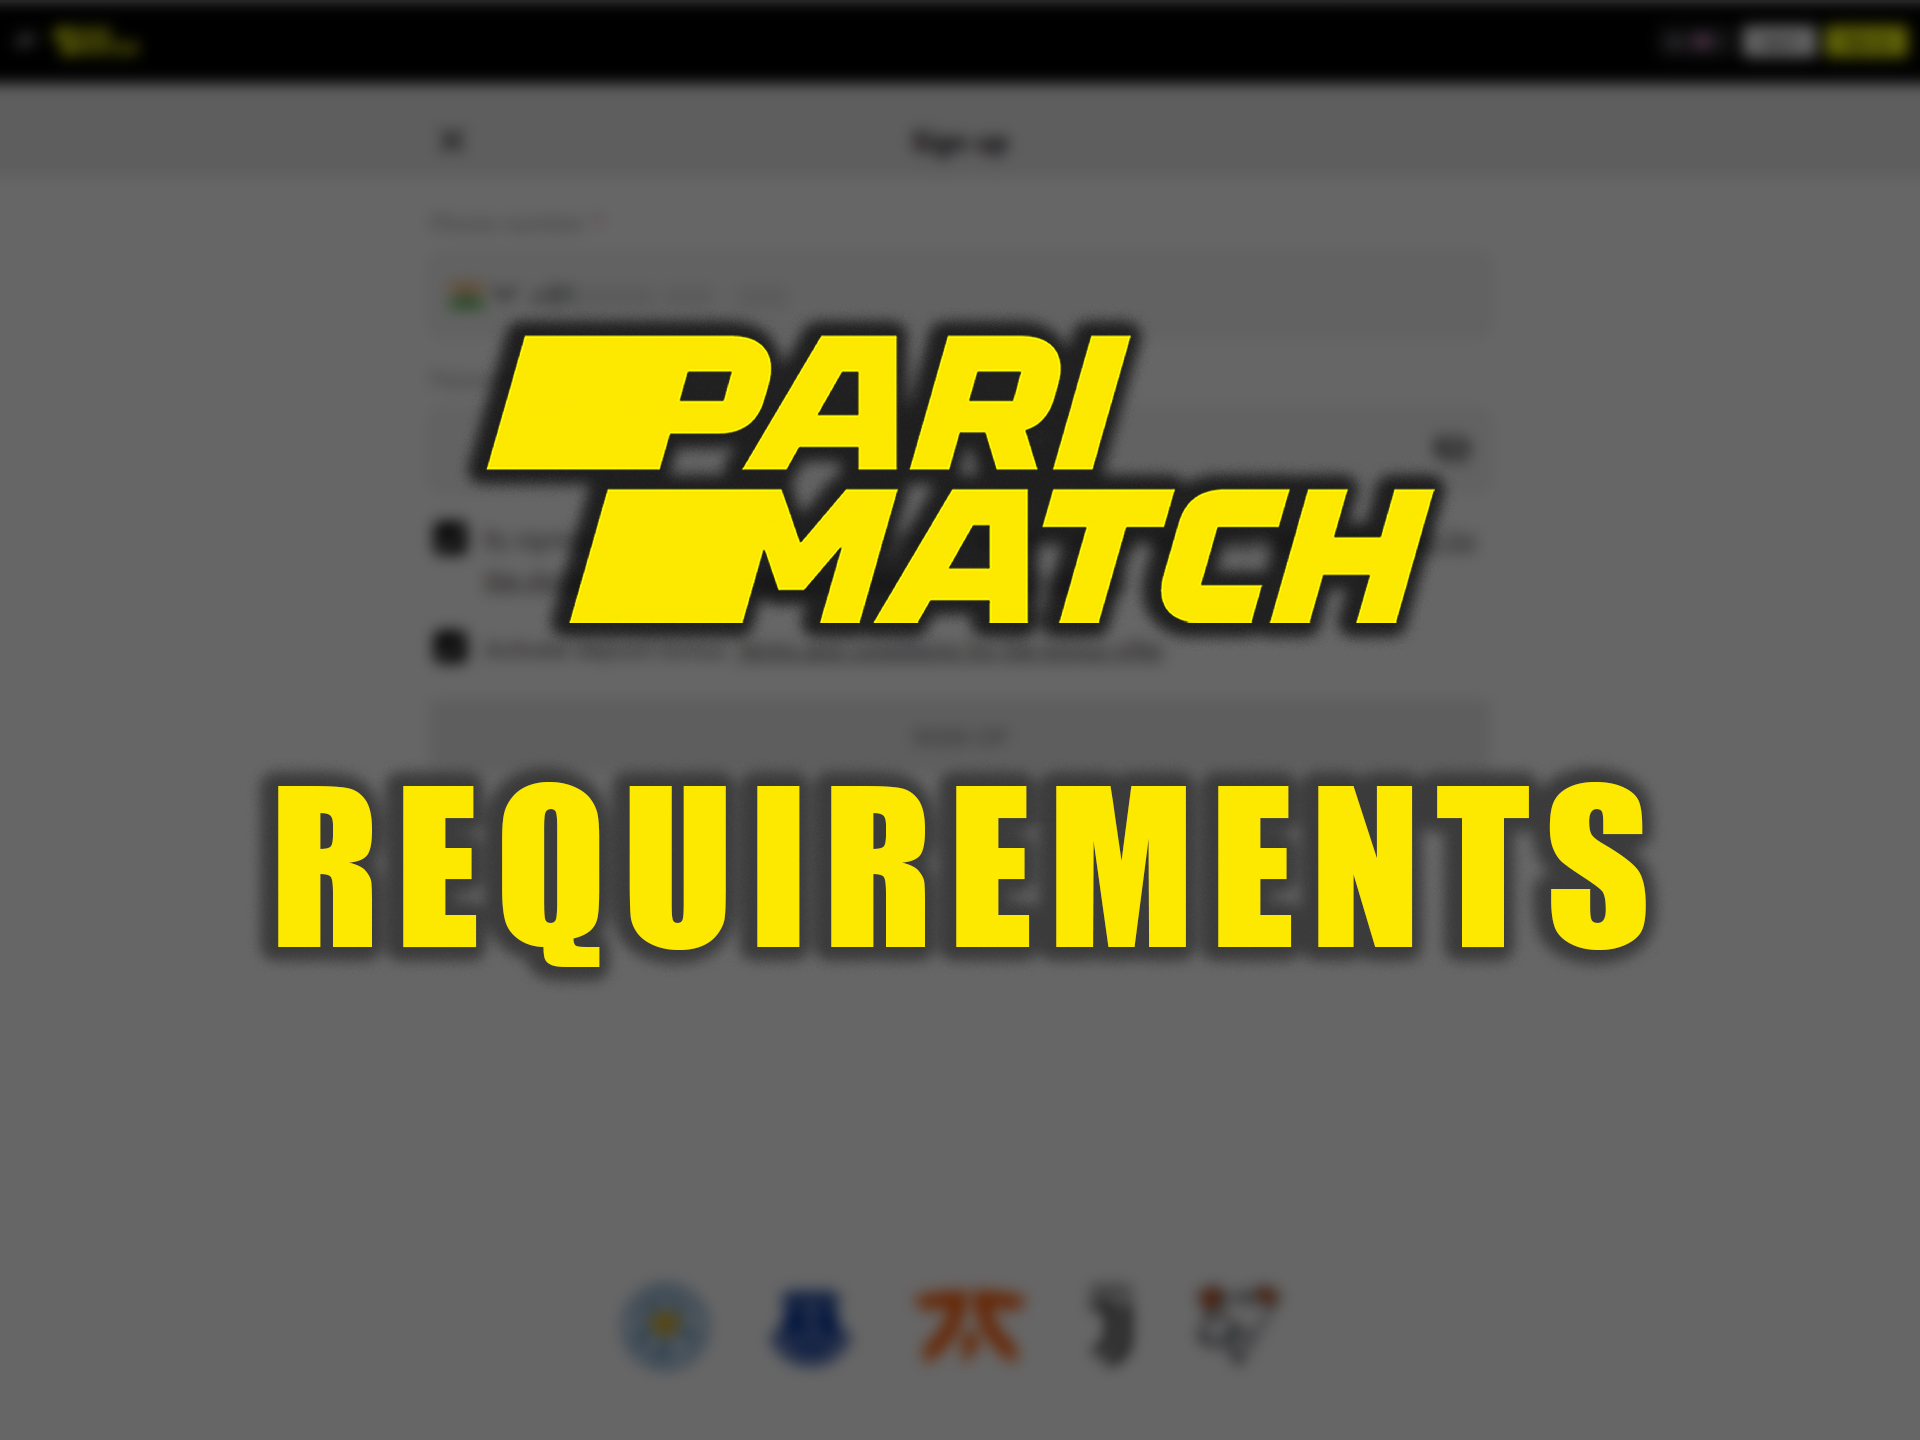 Before betting on Parimatch check out if you suit registration requirements or not.